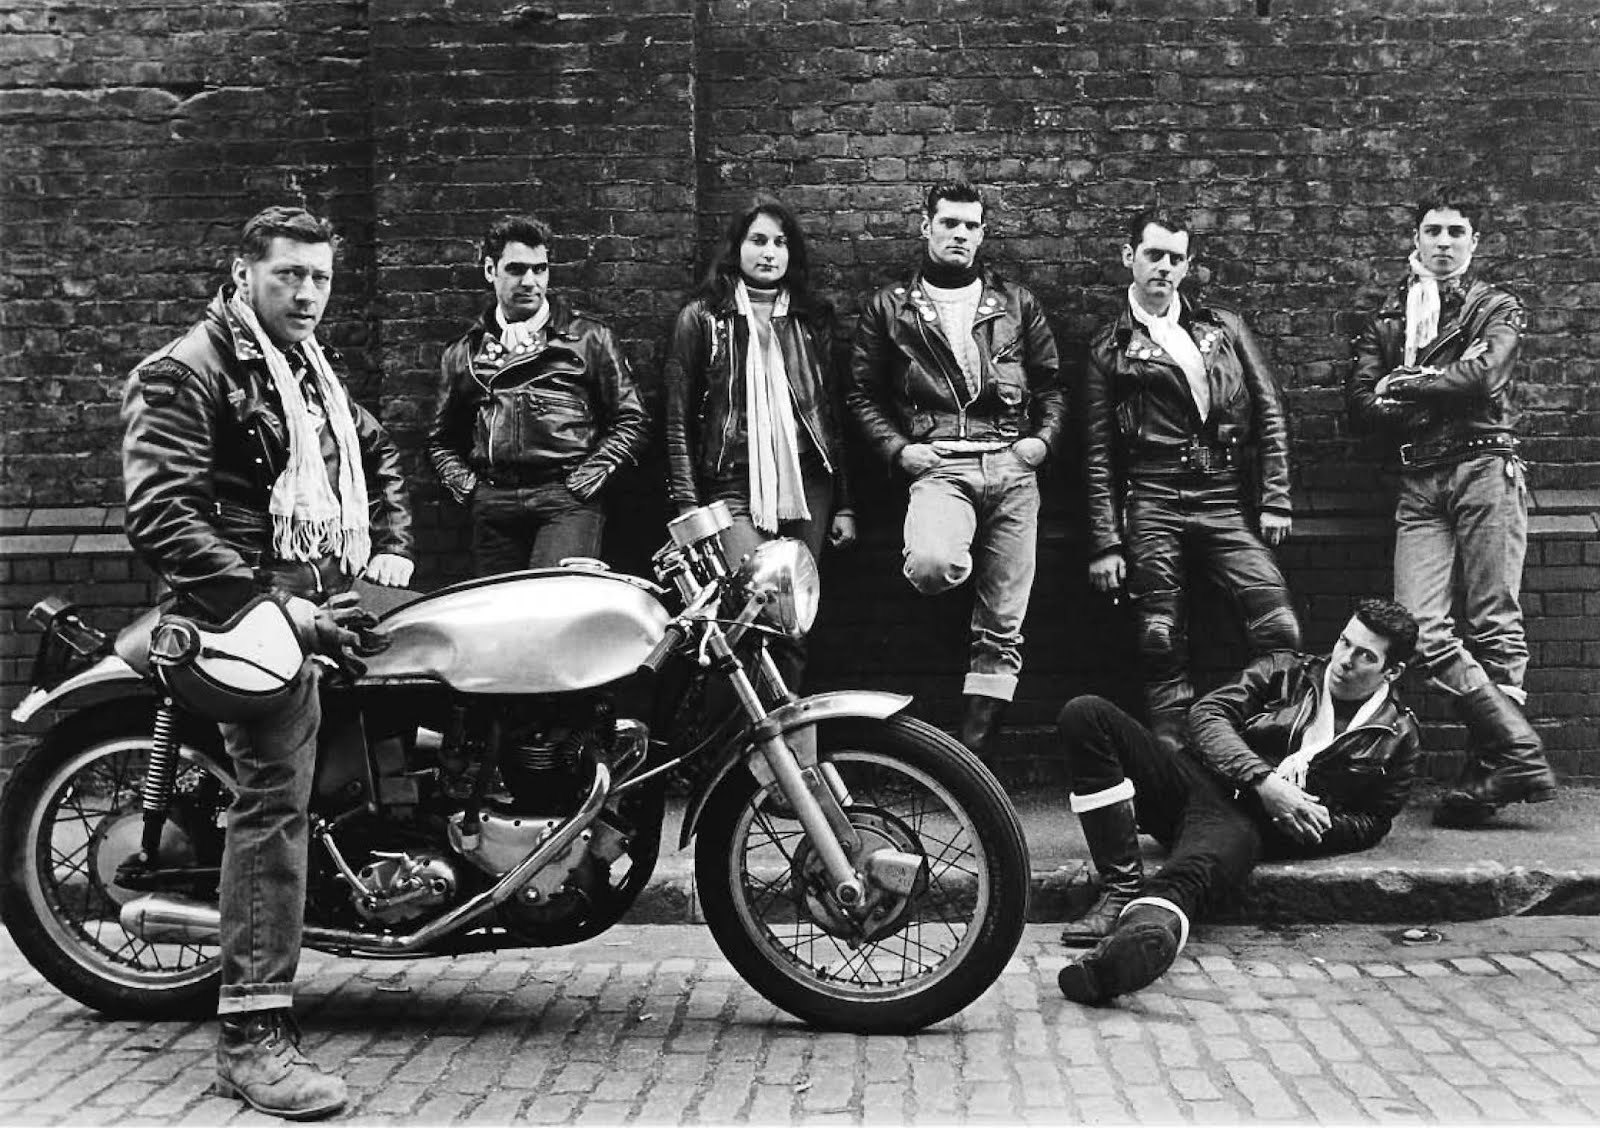 Mods and Rockers